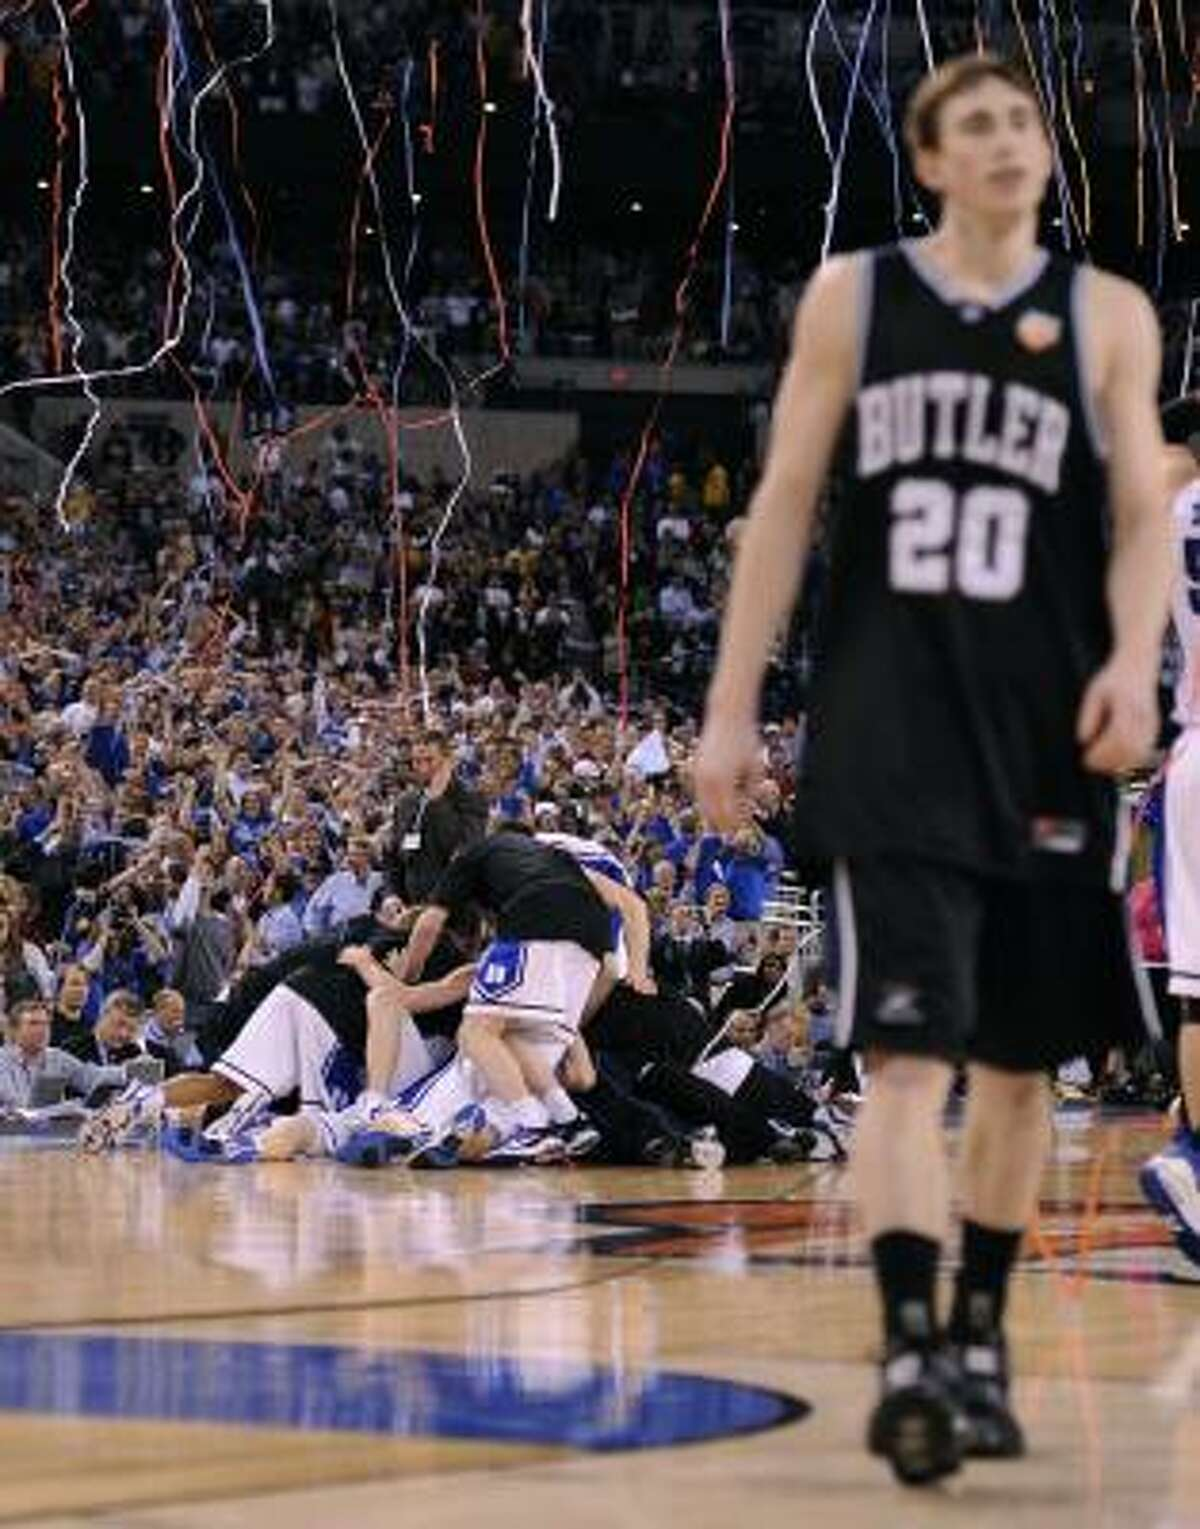 3. Cinderella Butler takes heavily favored Duke to the limit but misses a final shot at the buzzer as the Blue Devils win 61-59 for Mike Krzyzewski's fourth NCAA Tournament championship (April 5, 2010).